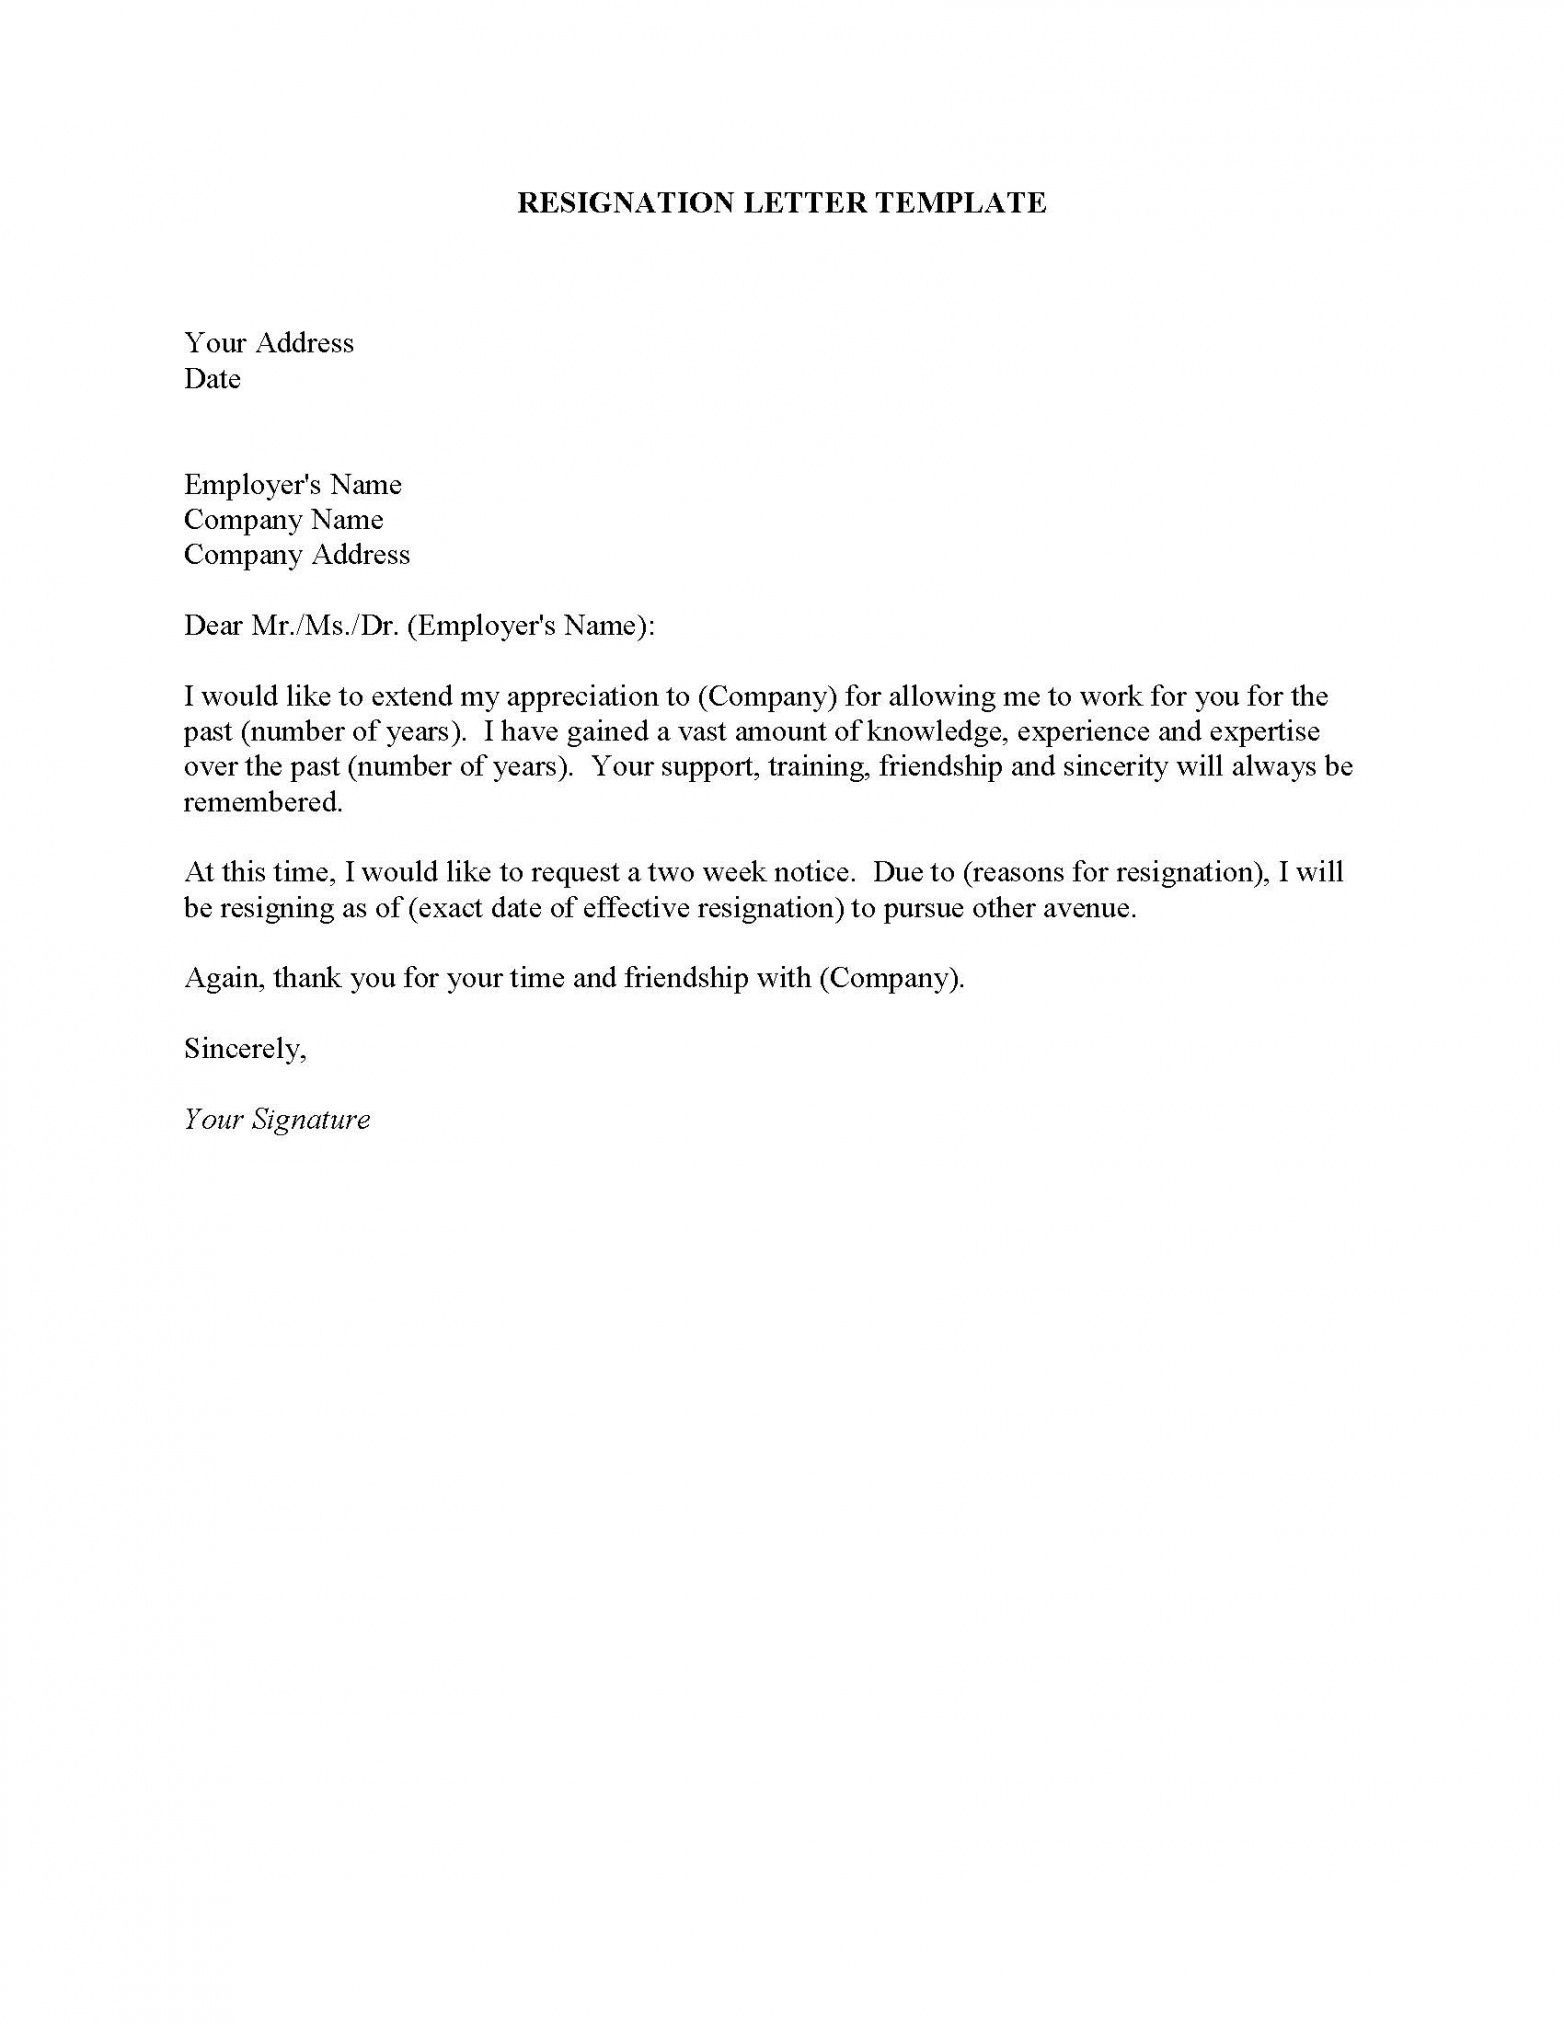 Browse Our Sample Of Nurse Resignation Letter From Fulltime To Prn Resignation Letter Resignation Letter Format Resignation Template